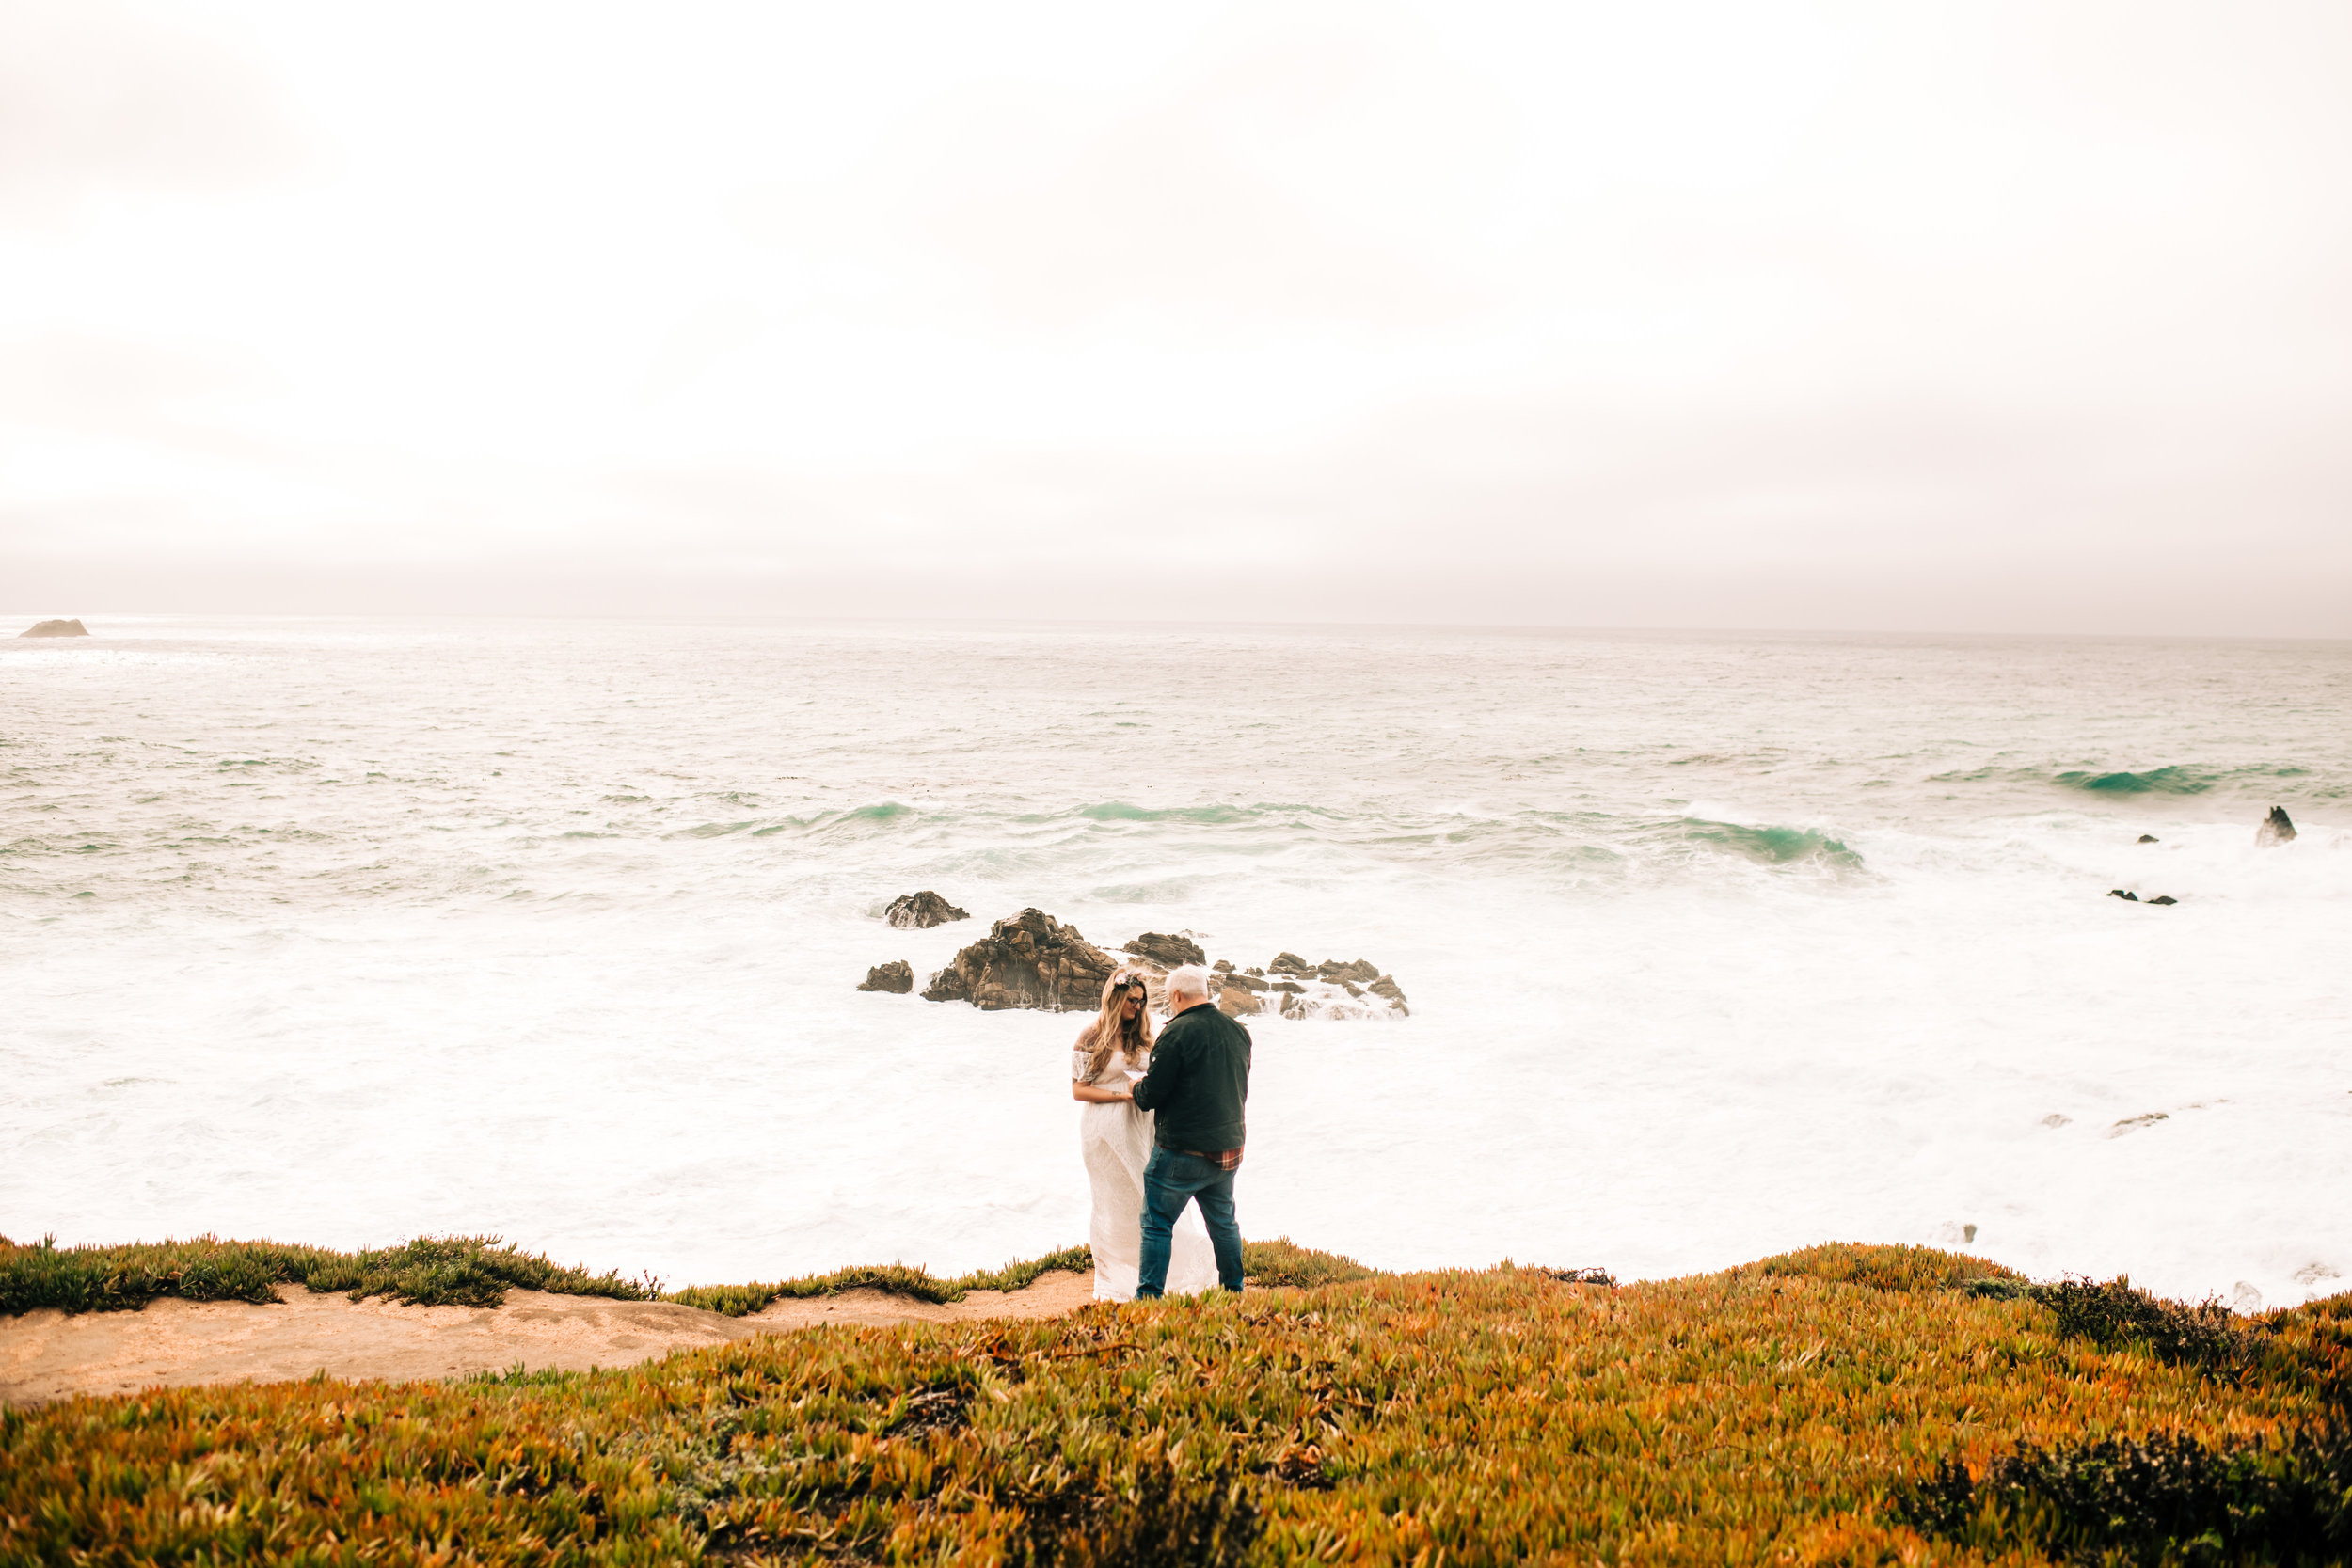 san francisco oakland bay area california sf yosemite big sur vow renewal nontraditional wedding photographer -82.jpg